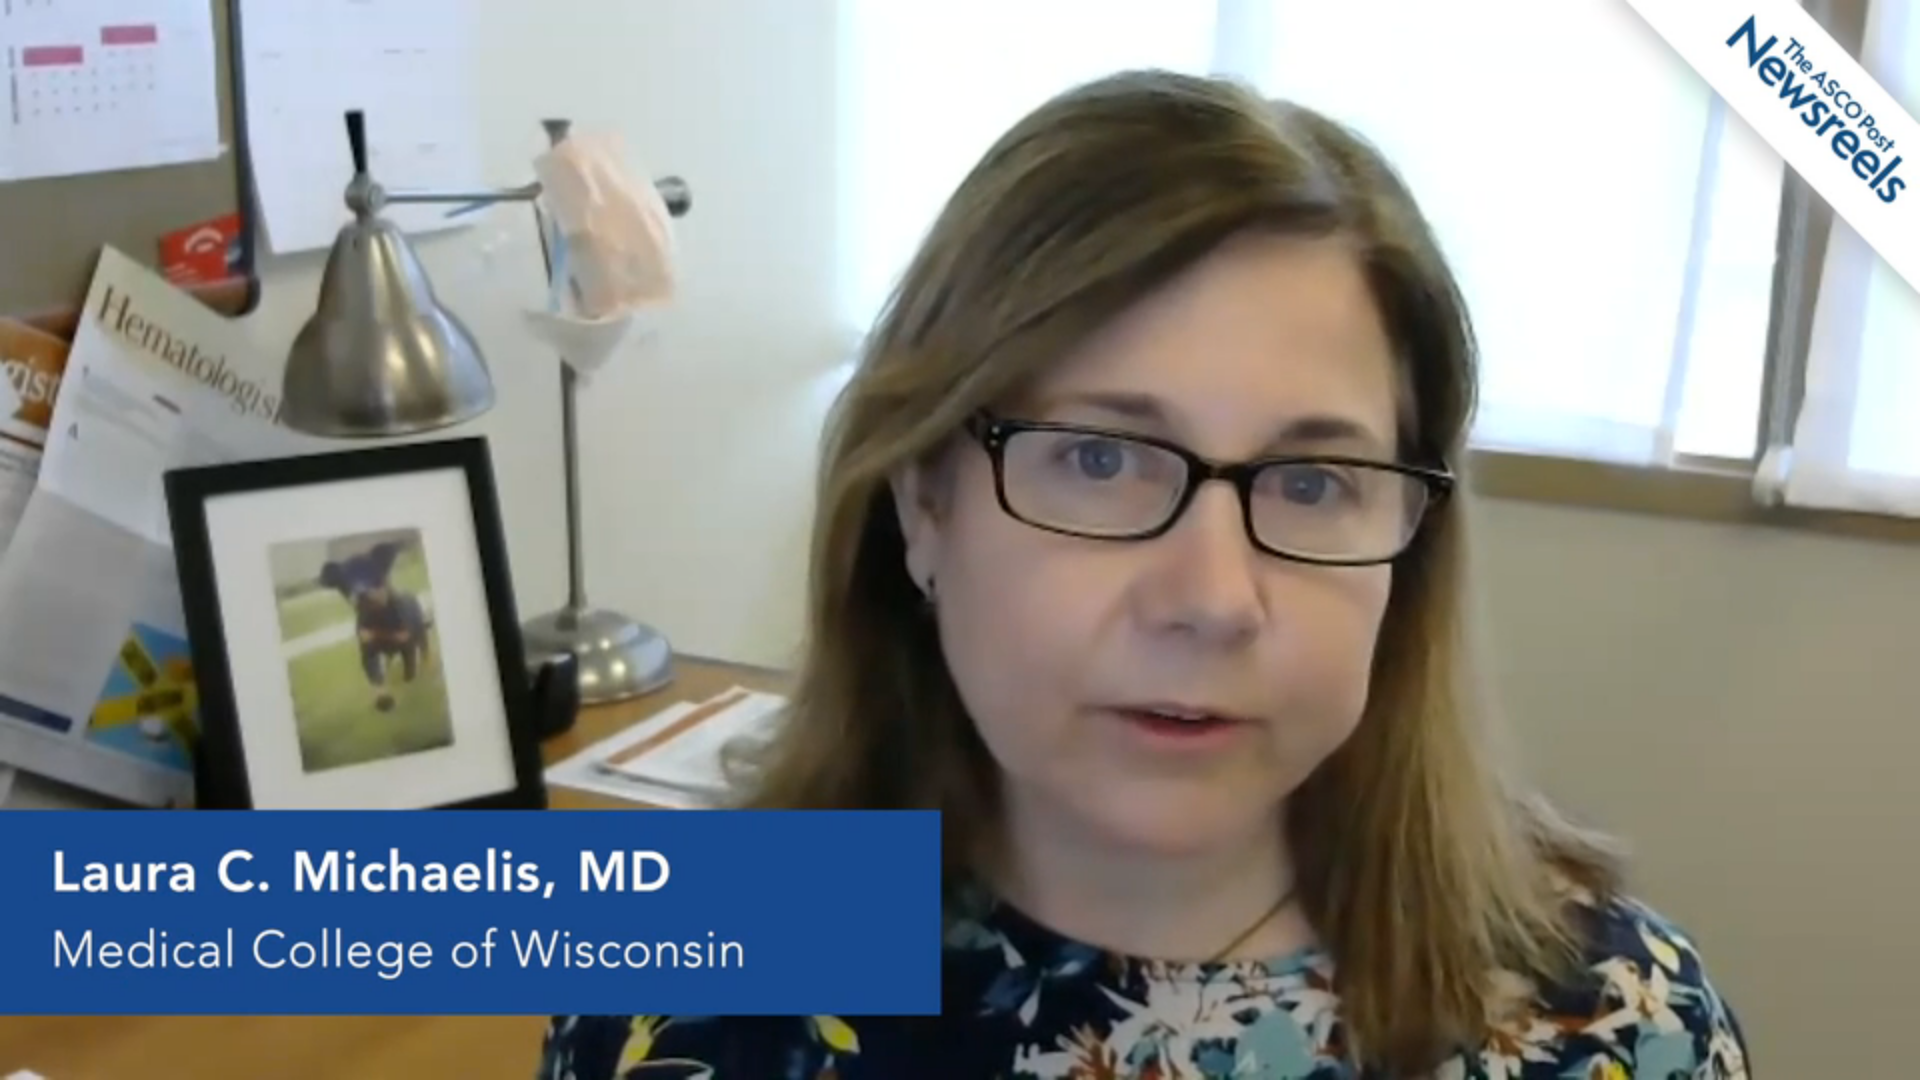 Video from Laura C. Michaelis, MD published by ASCO Post